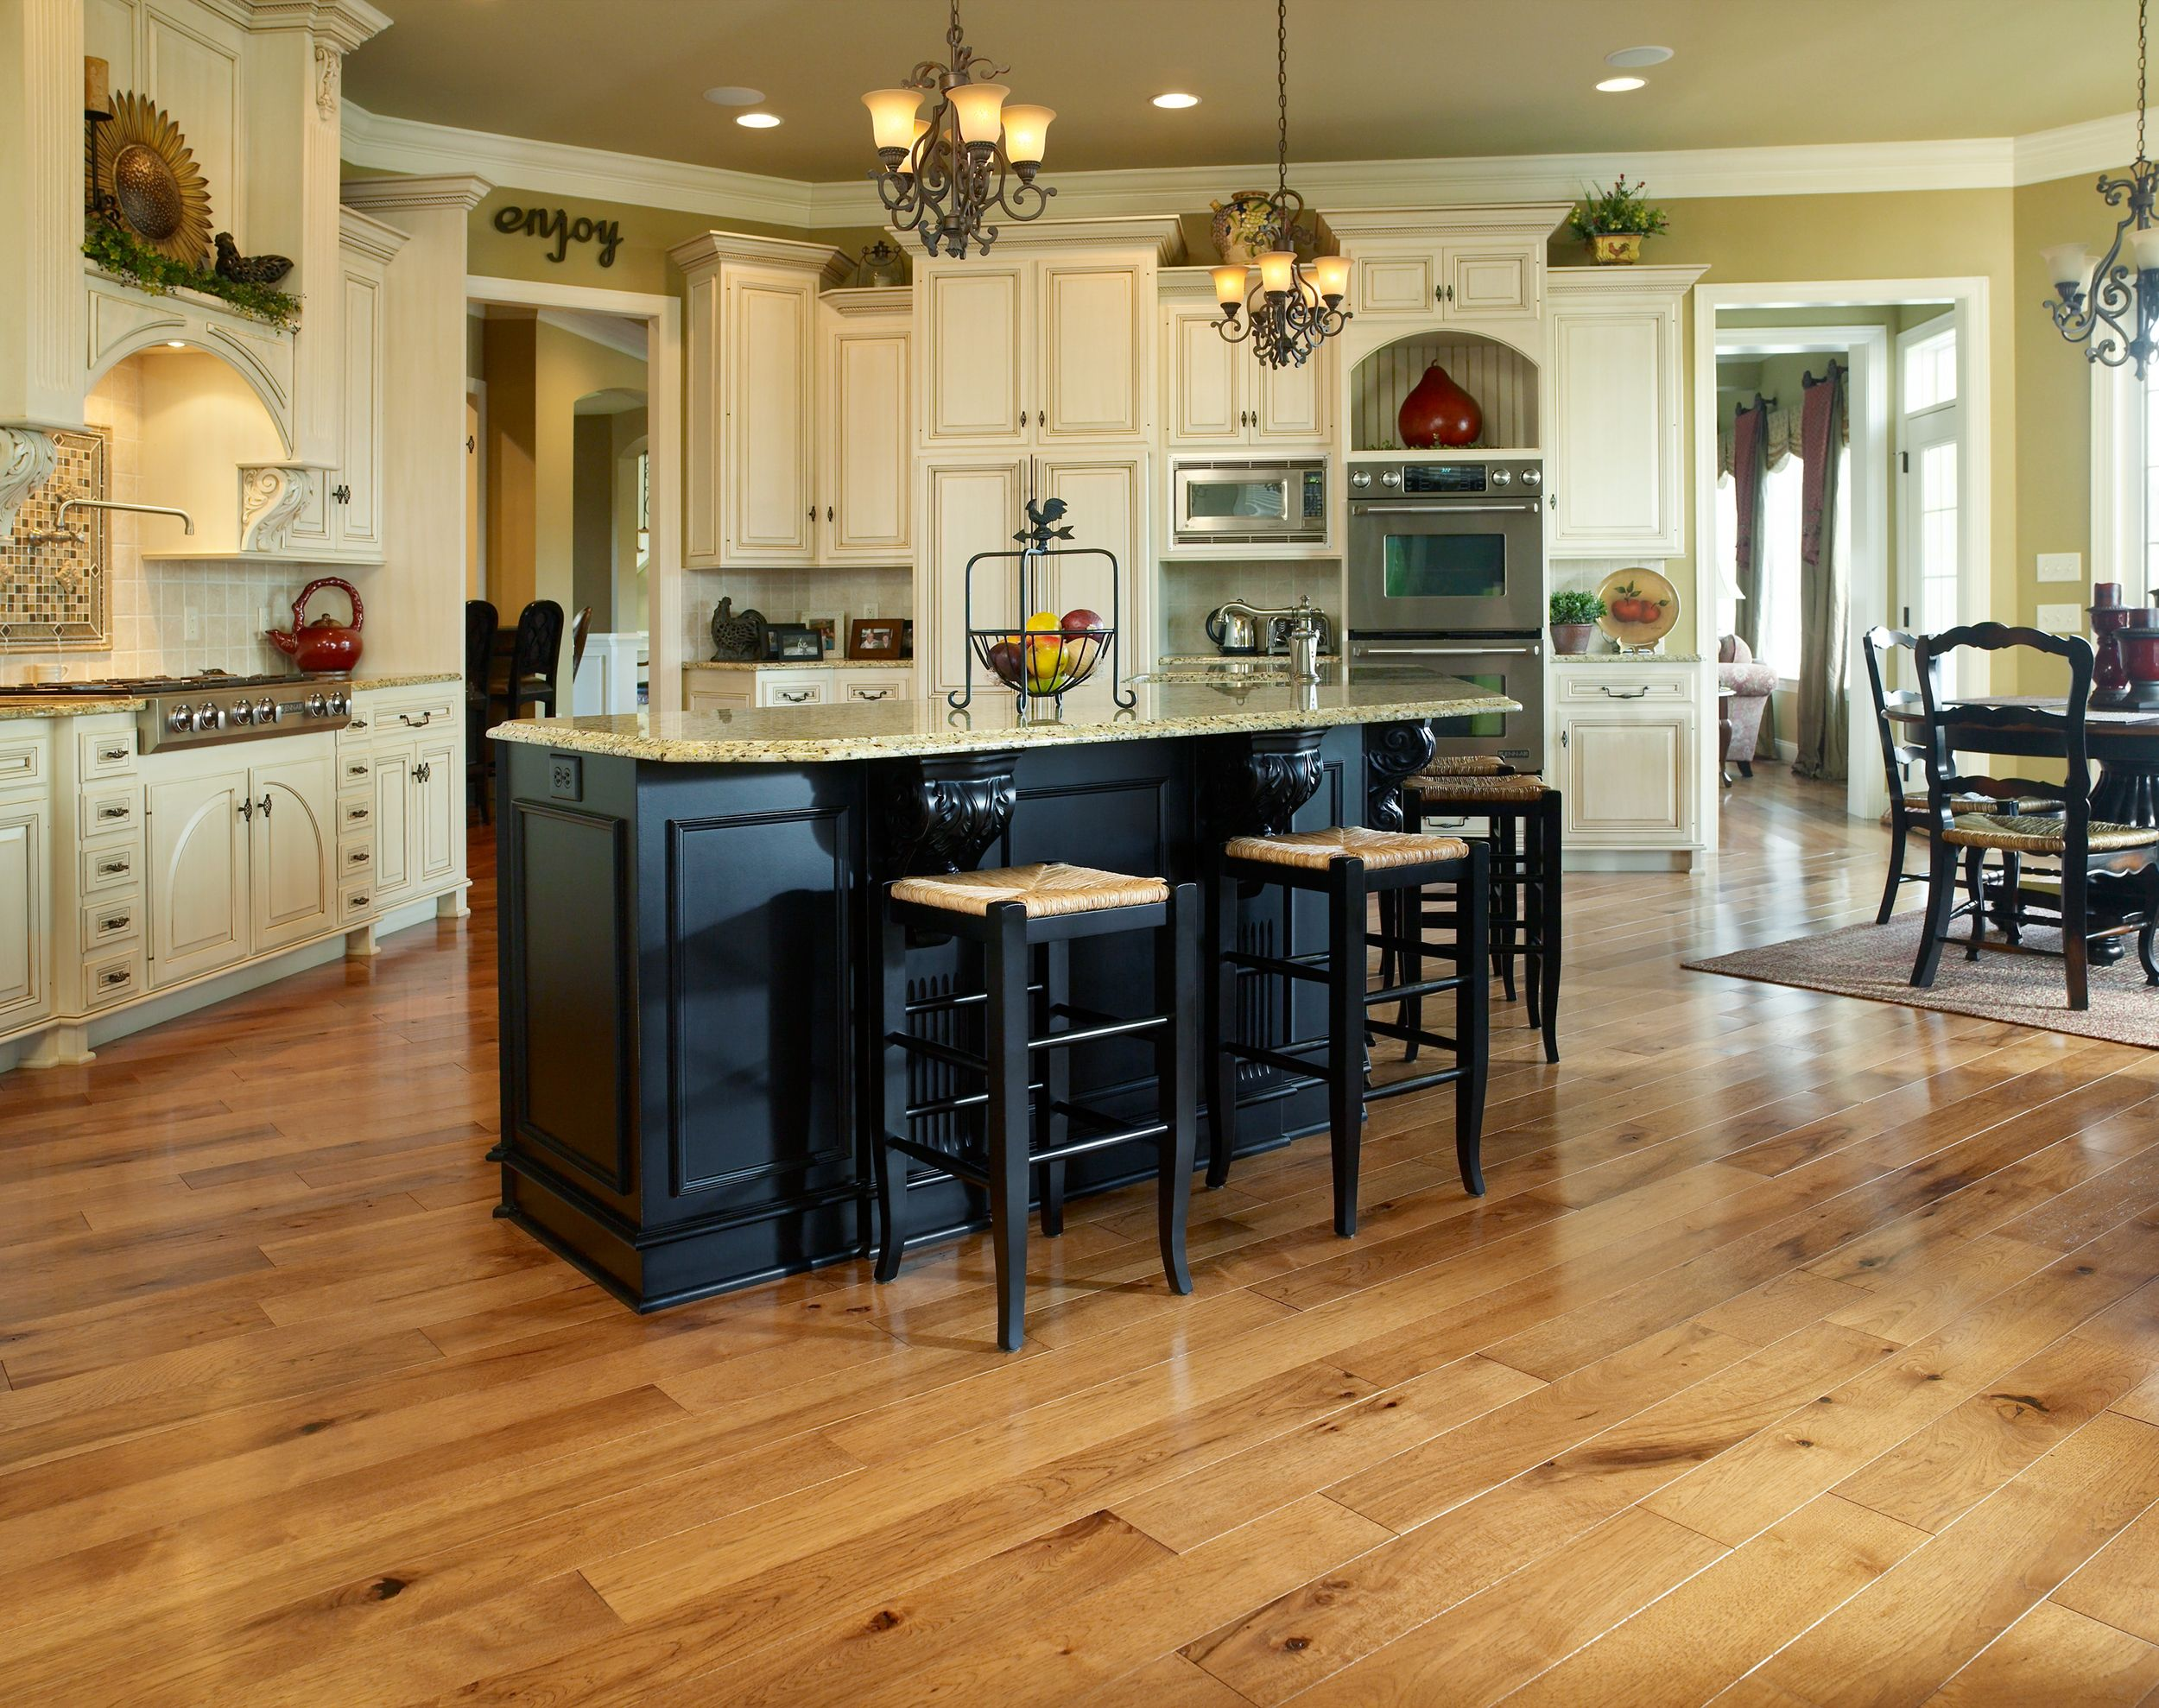 Wood Floors For Kitchens Plan Hickory Hardwood Flooring Bellawood And Hickory Hardwood